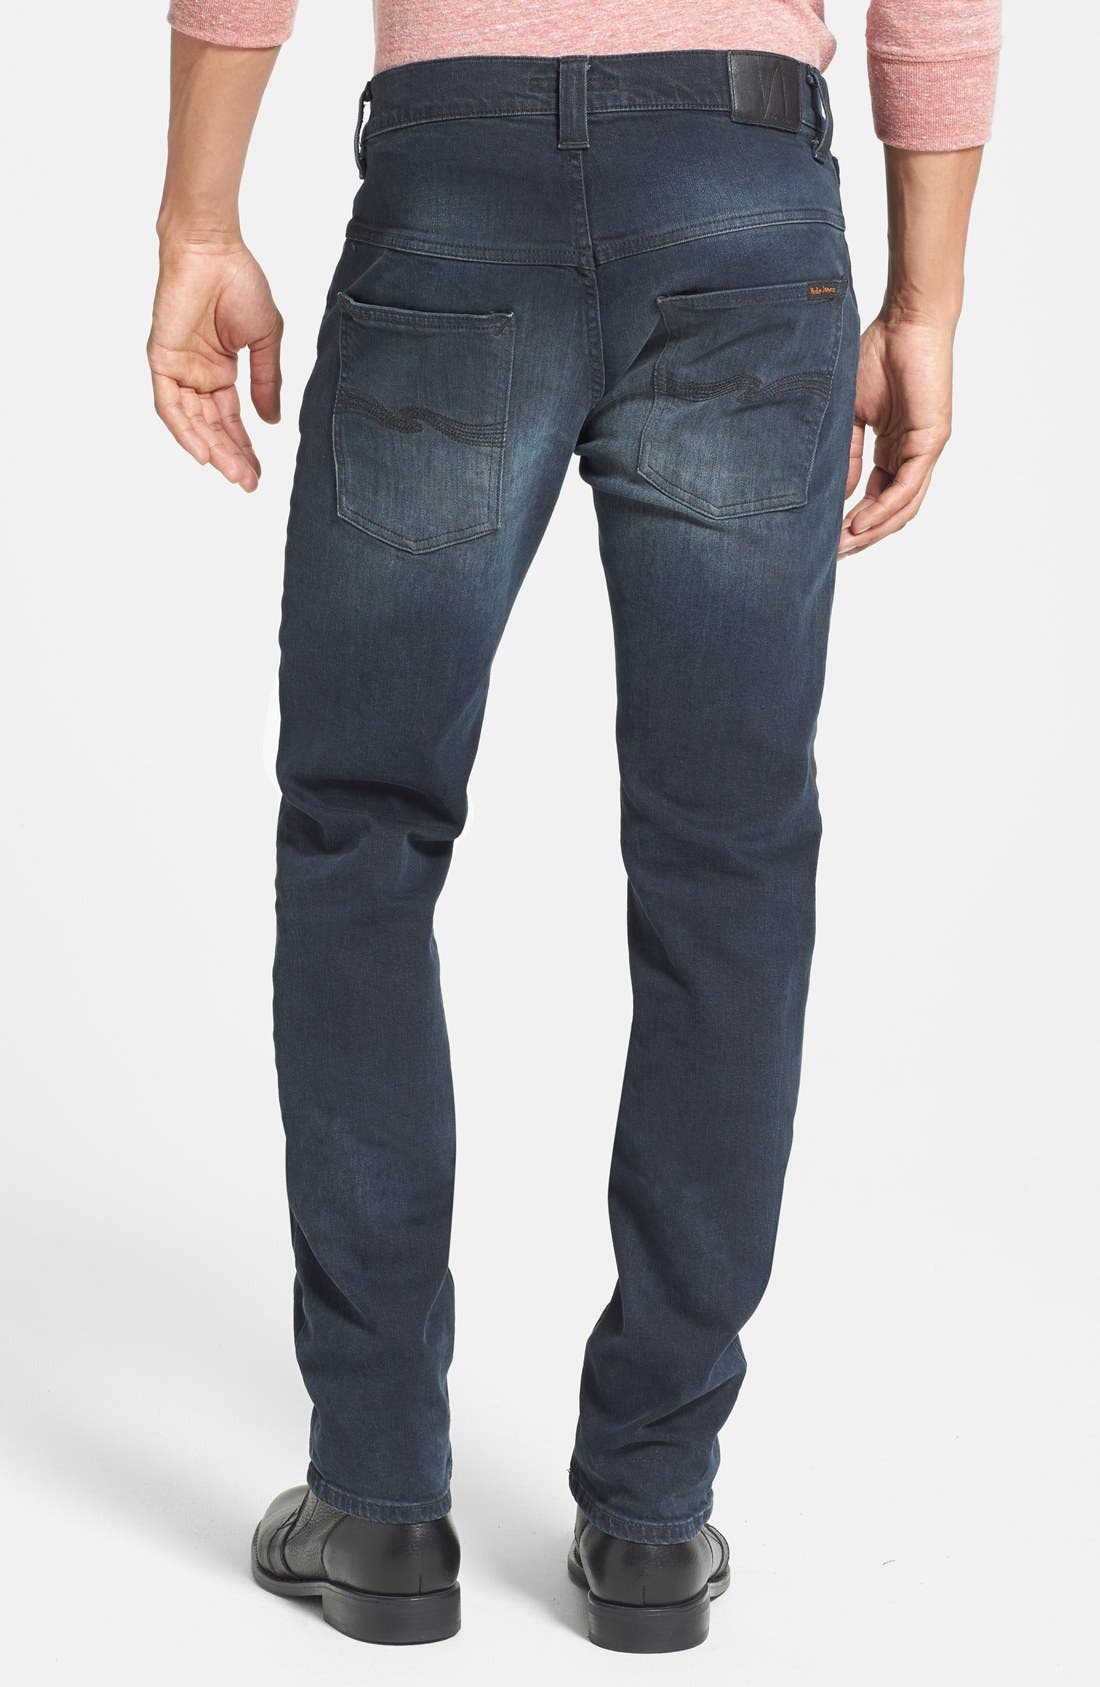 Alternate Image 2  - Nudie Jeans 'Thin Finn' Skinny Fit Jeans (Organic Black Grey)